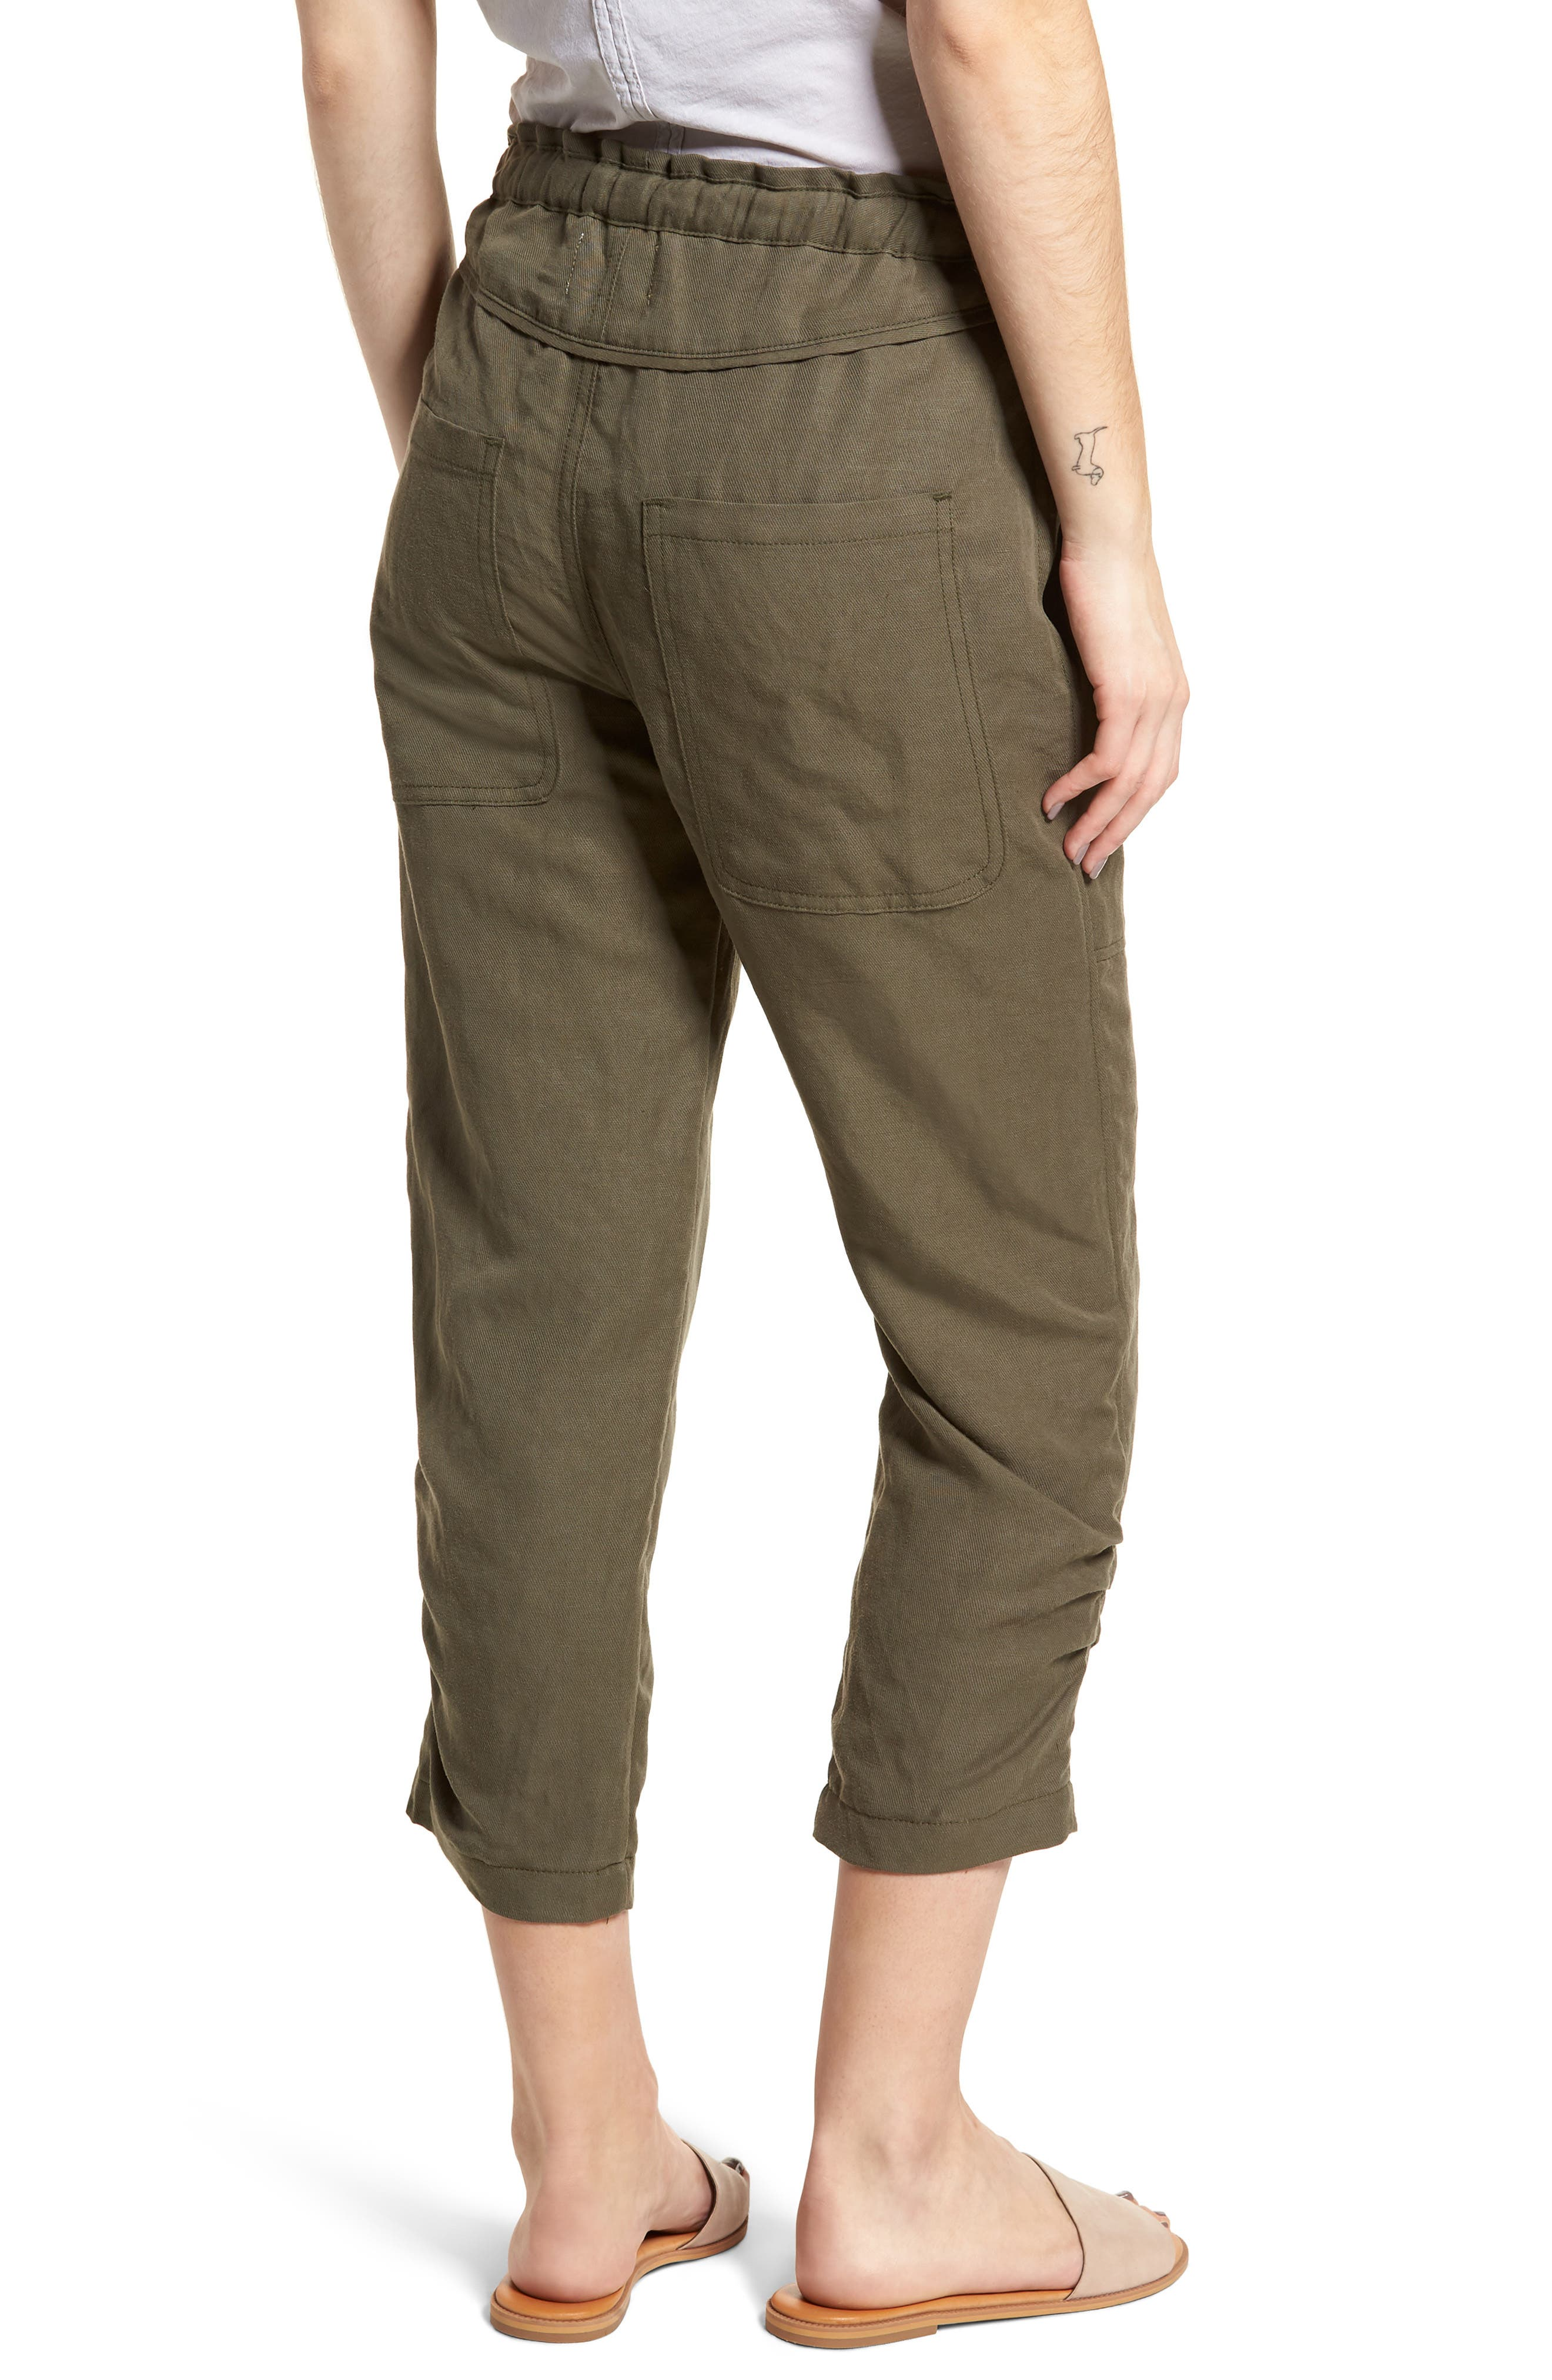 Stellina High Waist Pants,                             Alternate thumbnail 2, color,